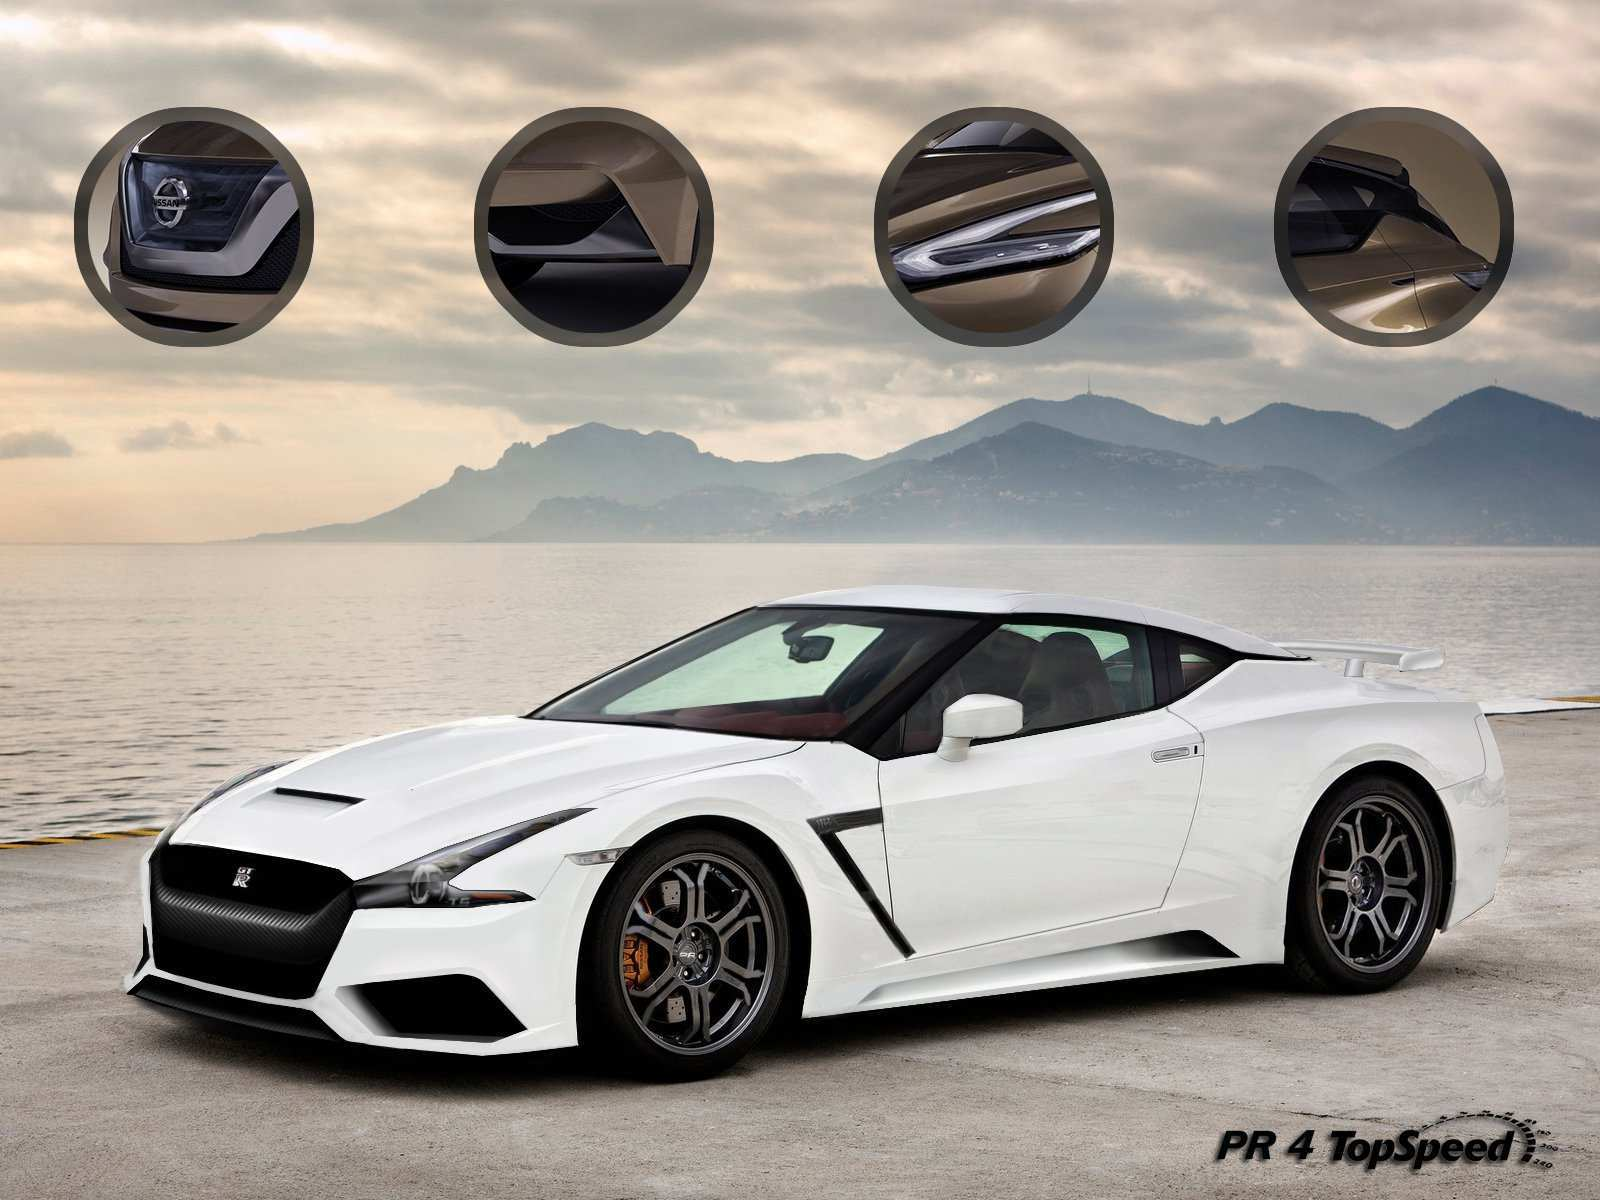 46 Great Nissan Gtr 2020 Top Speed Overview by Nissan Gtr 2020 Top Speed